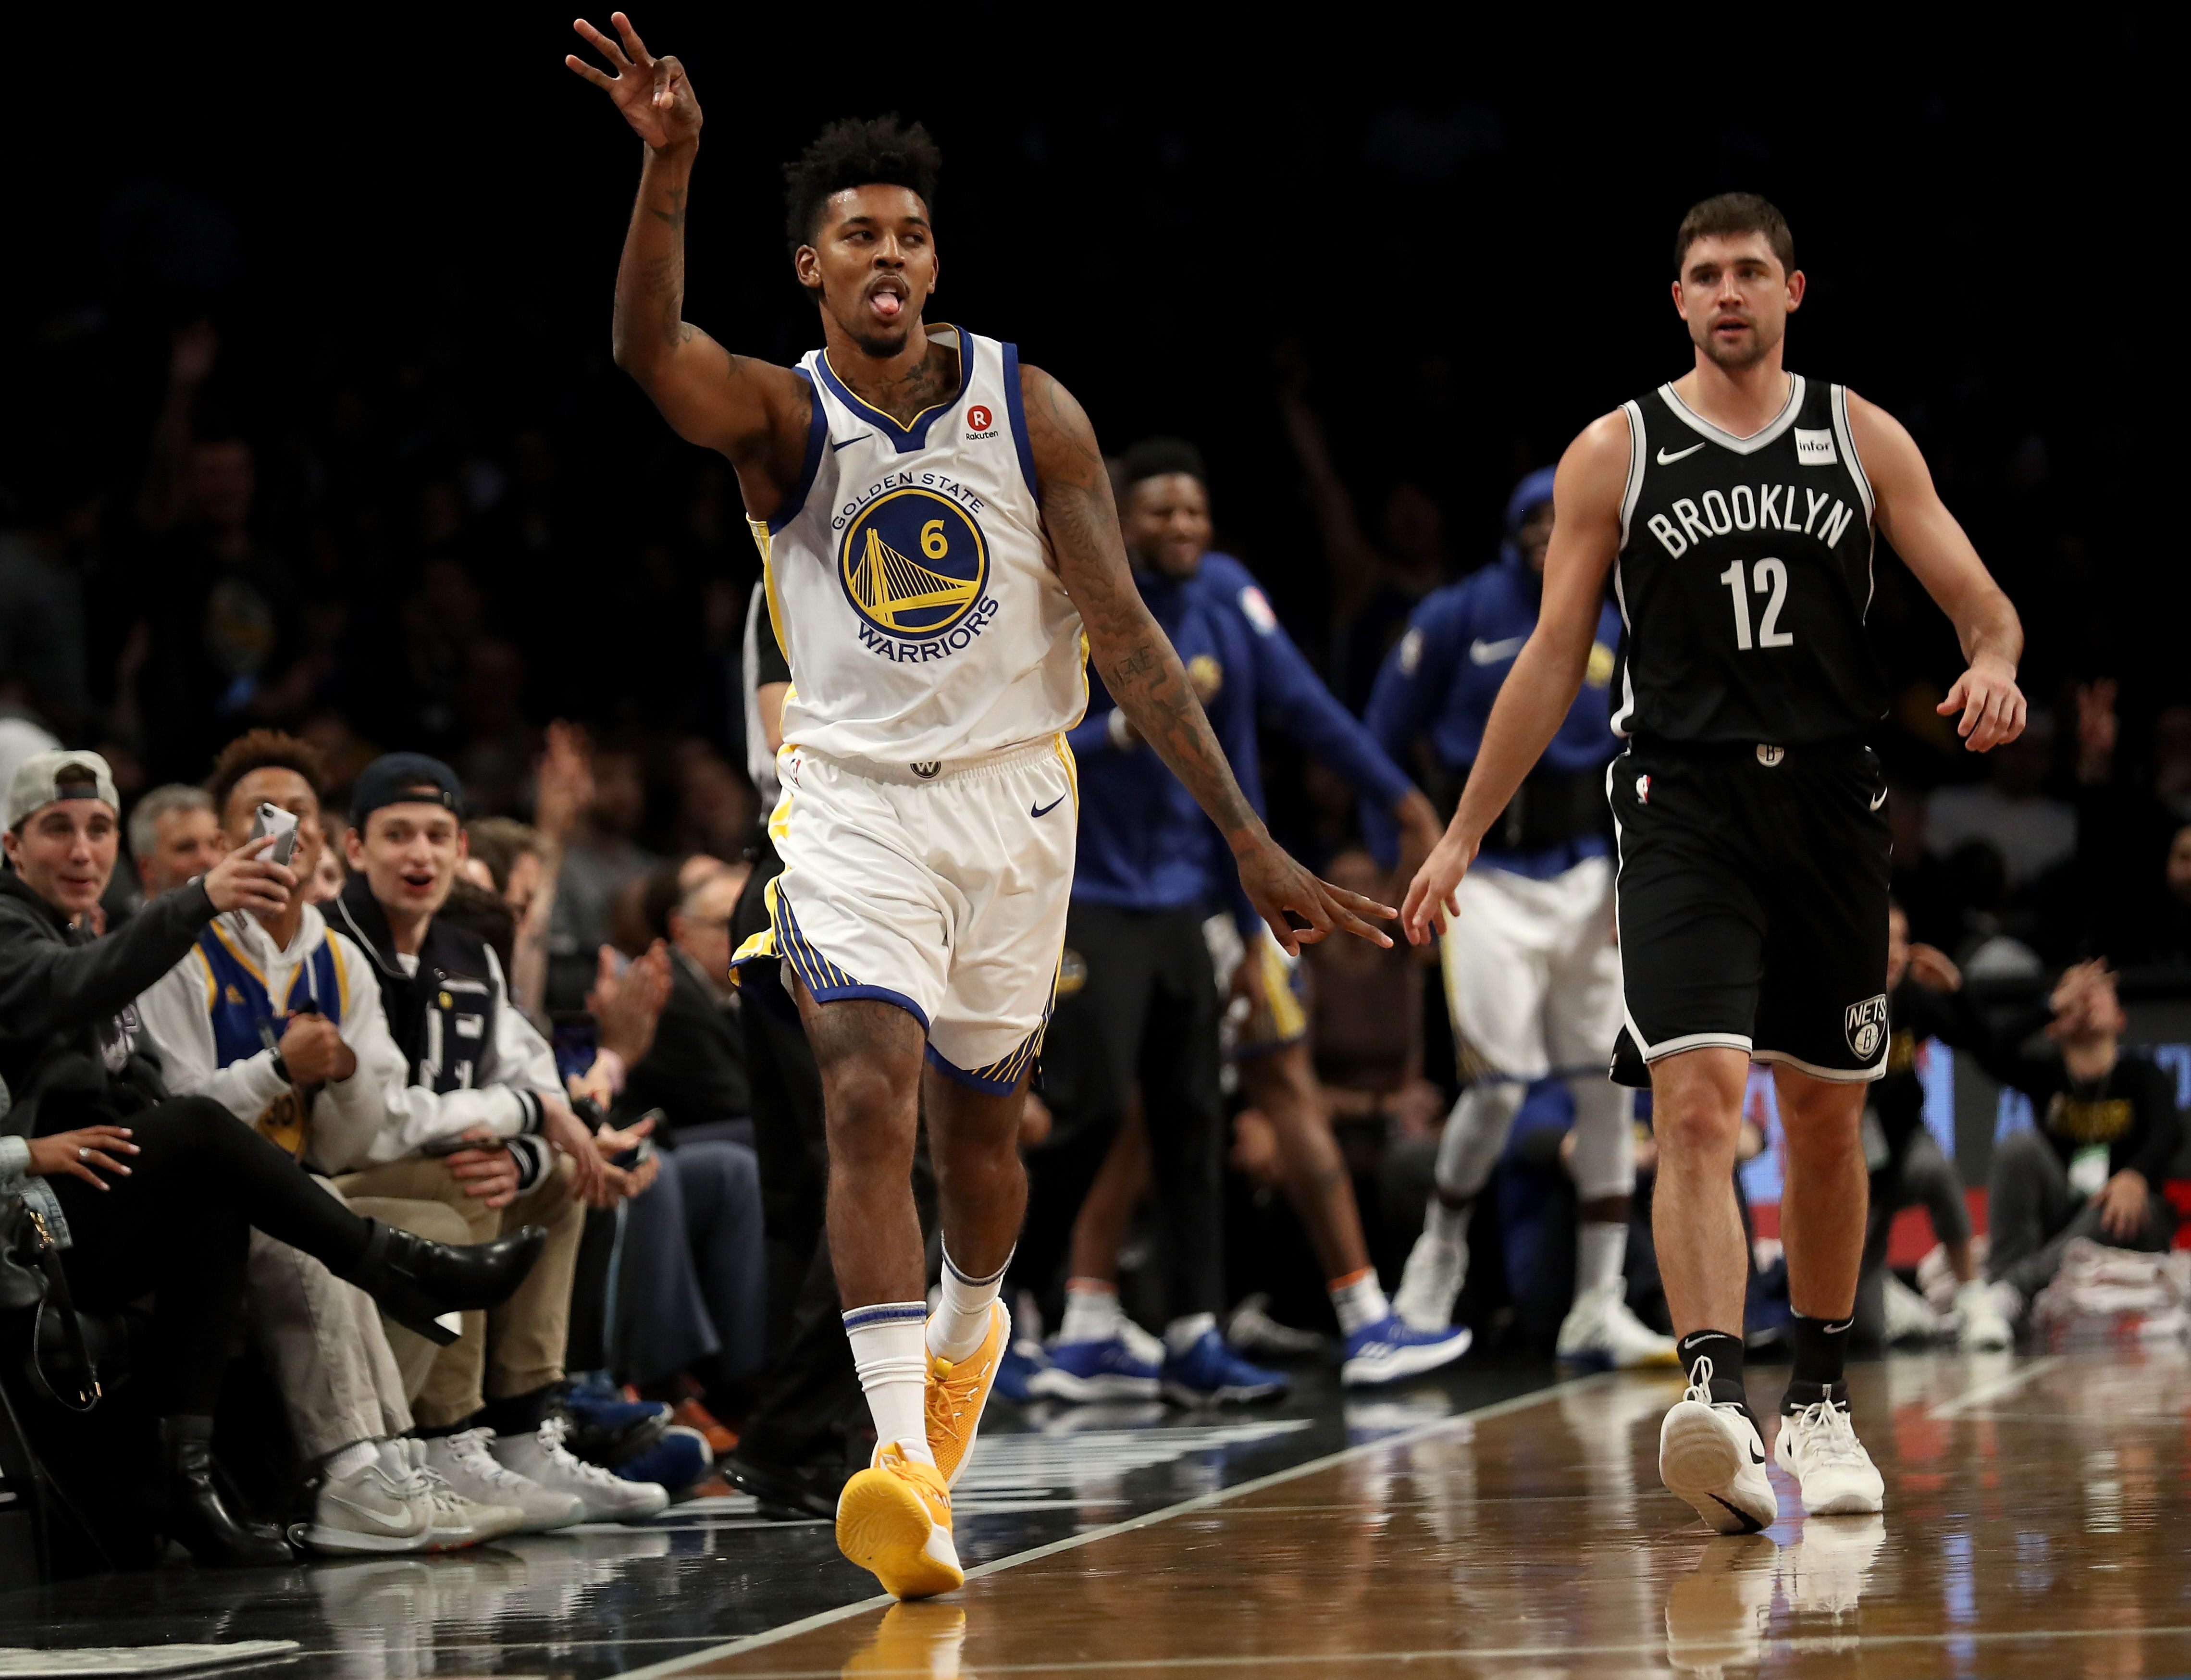 Stephen Curry's offensive explosion leads Warriors past Nets — NBA wrap